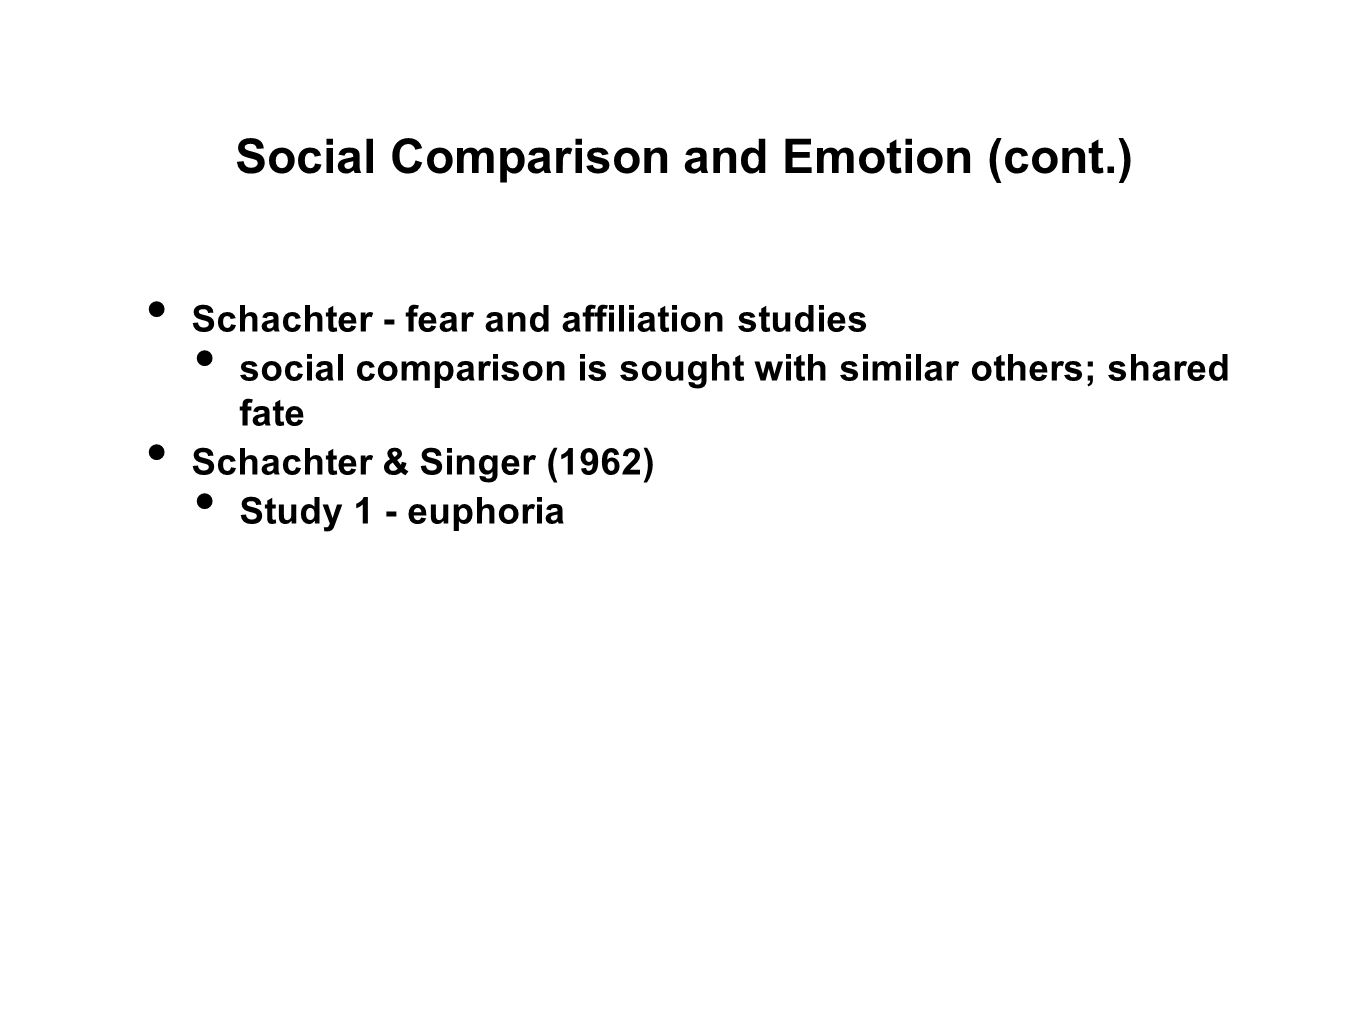 Social Comparison and Emotion (cont.) Schachter - fear and affiliation studies social comparison is sought with similar others; shared fate Schachter